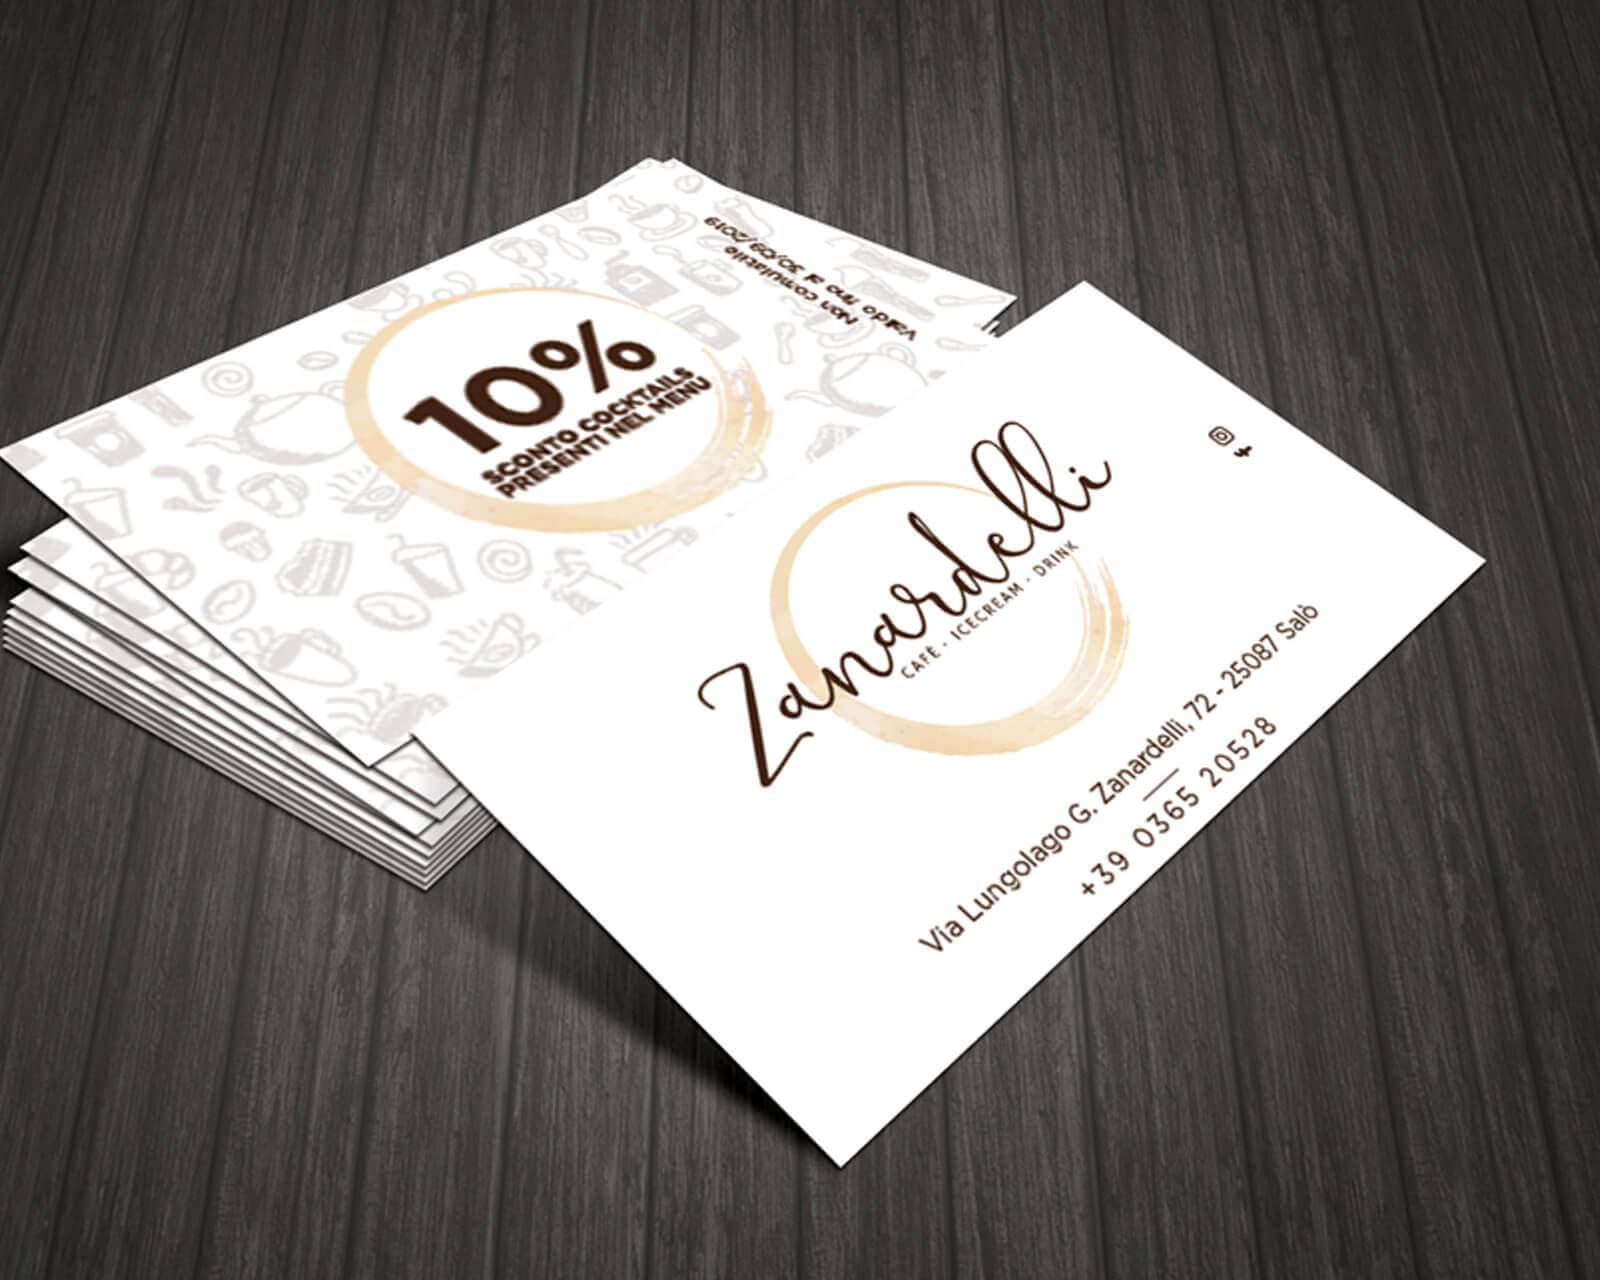 Coupon Sconto Zanardelli